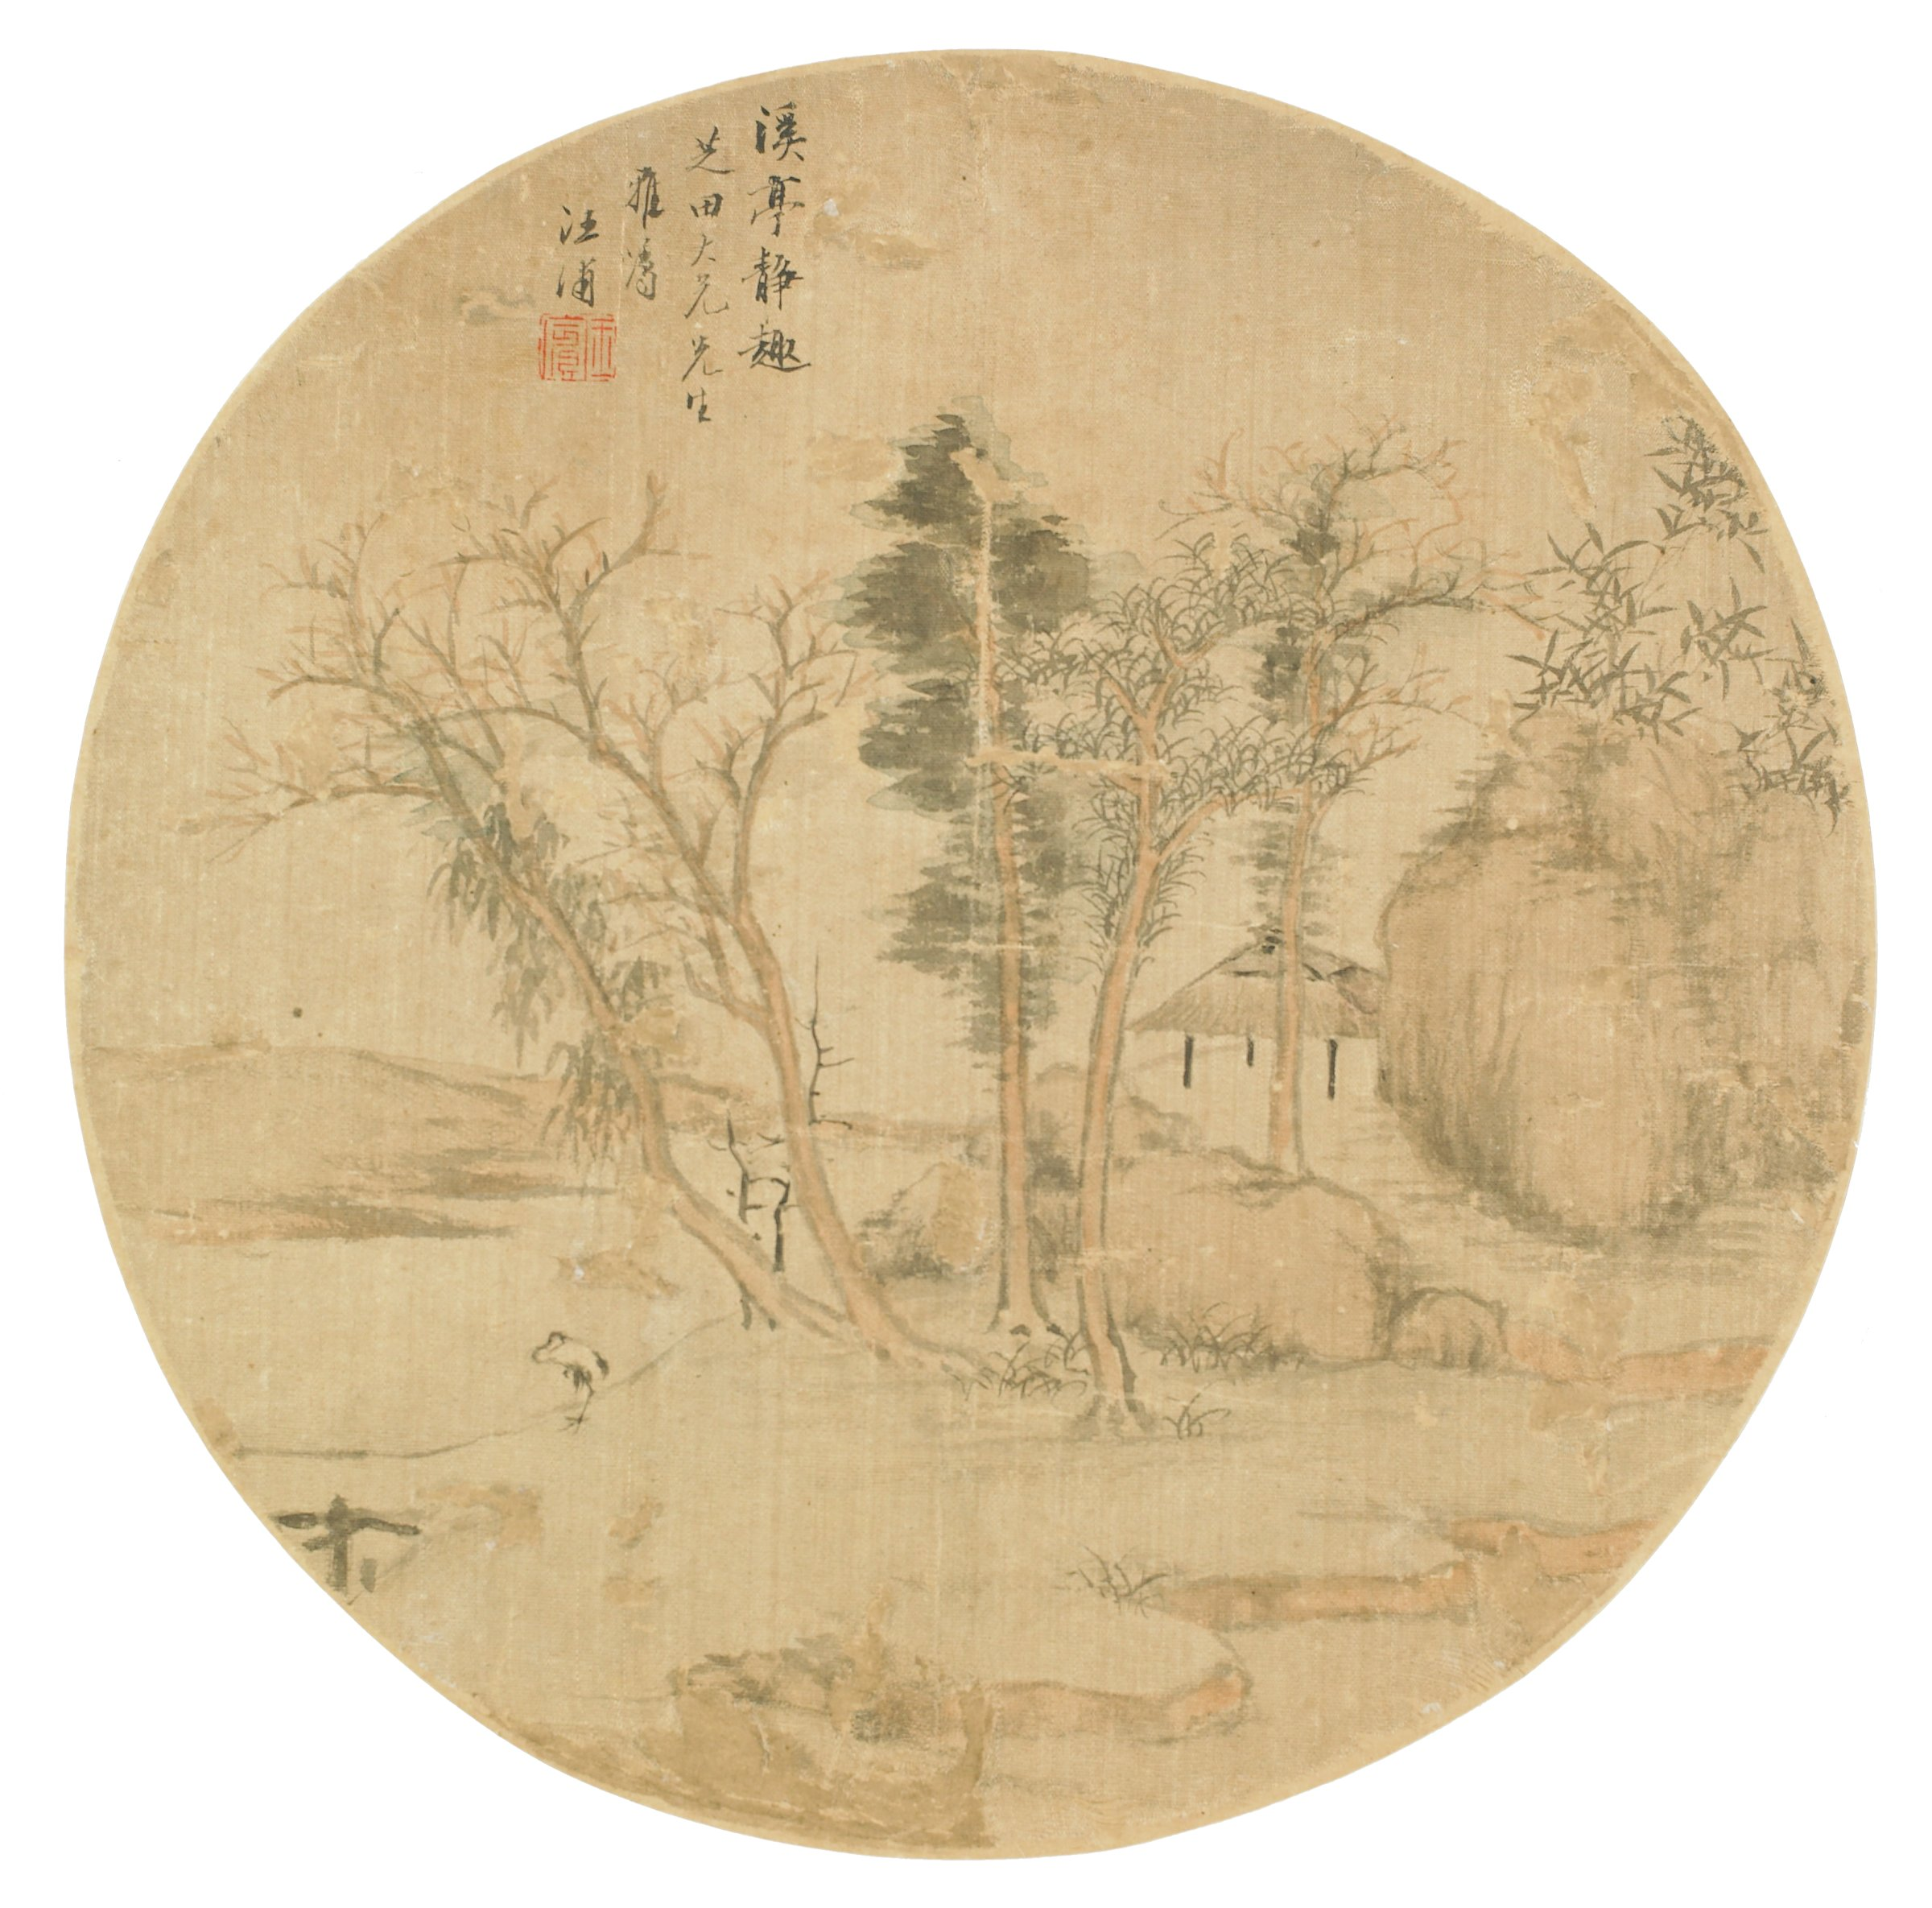 Tranquility at the Pavilion by the Stream, Wang Pu, ink and color on silk